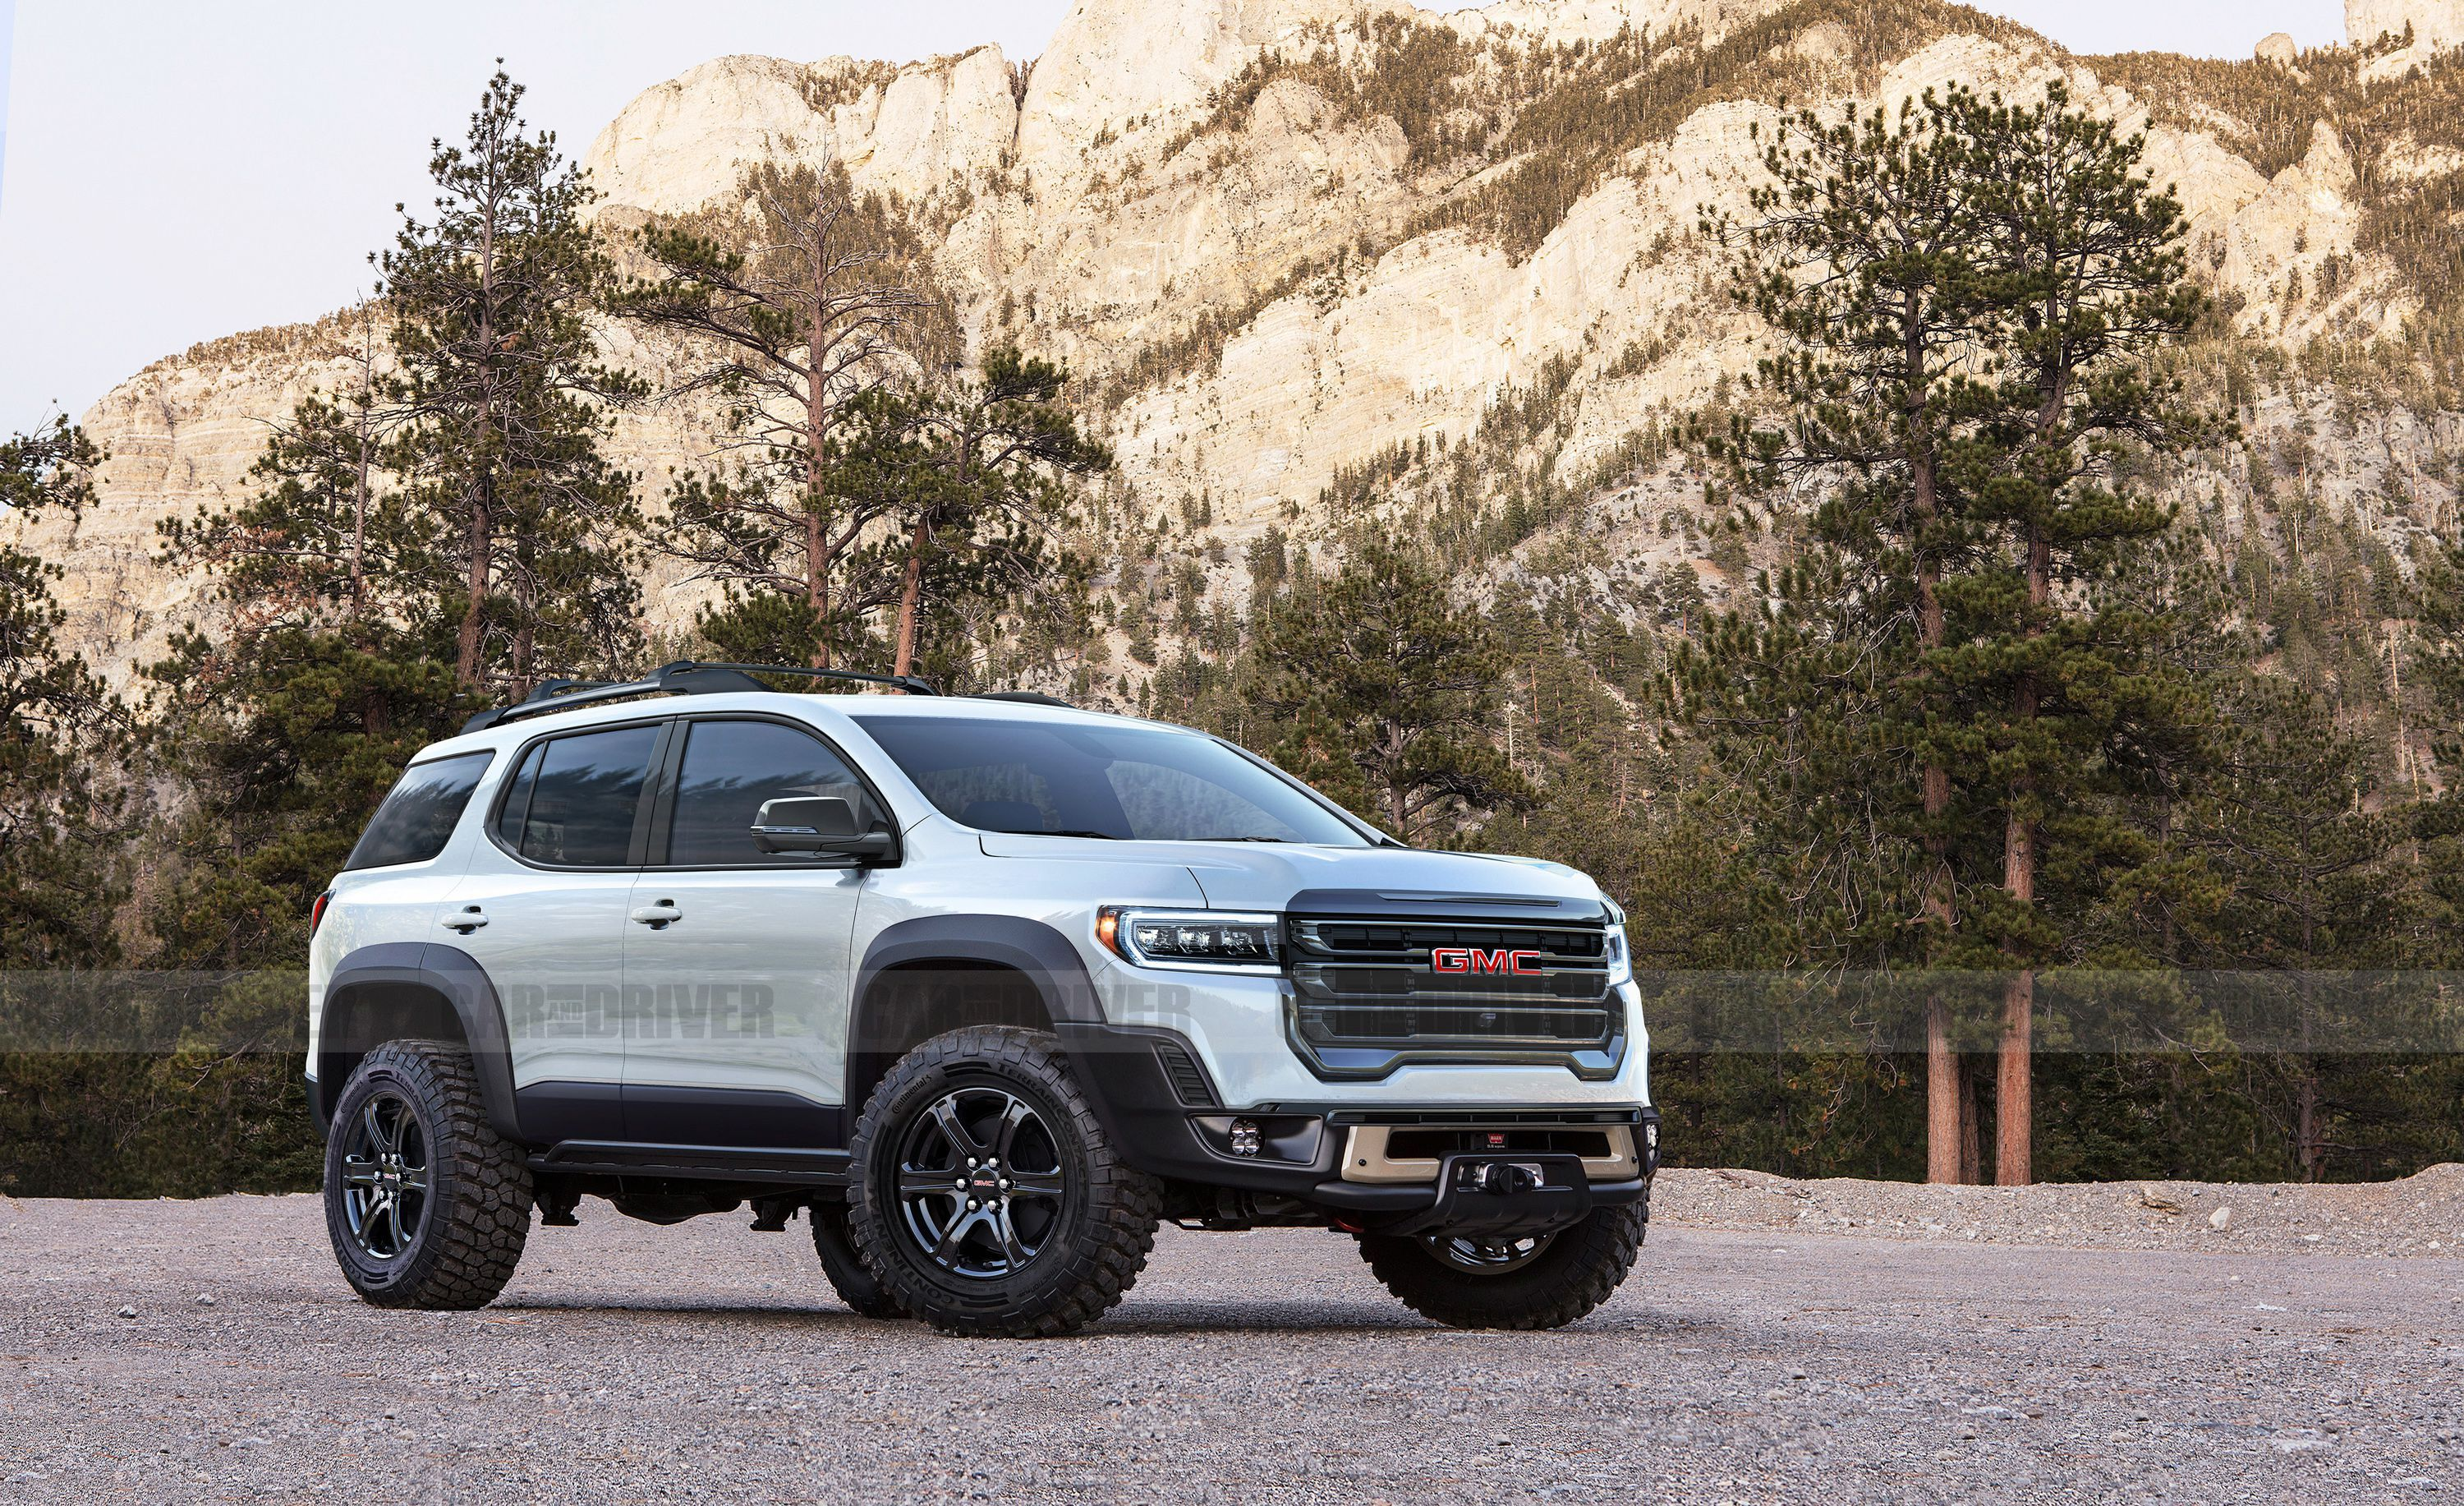 The 2022 Gmc Jimmy Could Be Gms Answer To The Jeep Wrangler